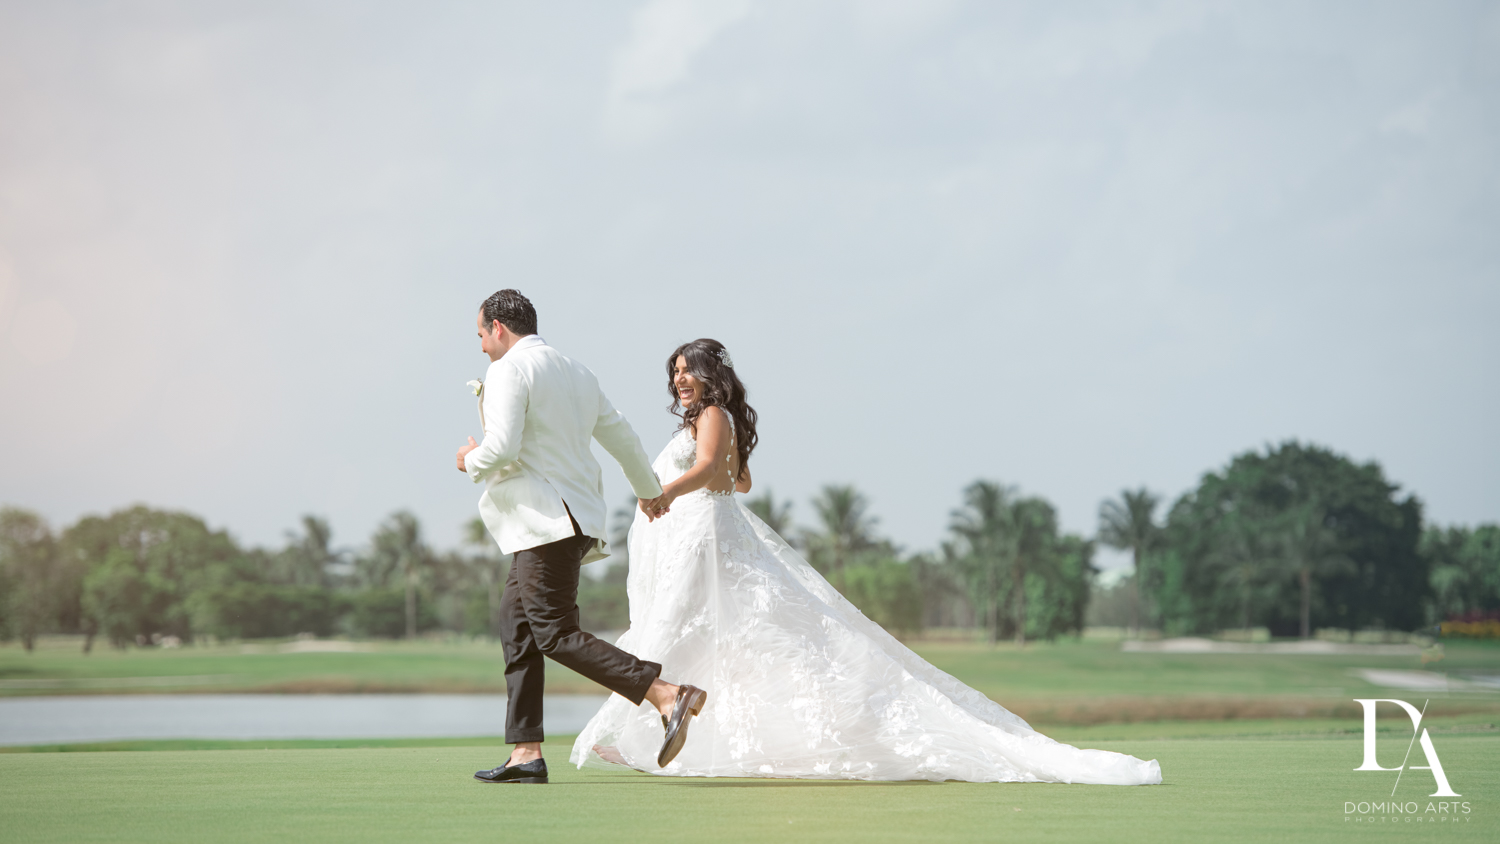 running bride and groom at Elegant Classy Wedding at Trump Doral by Domino Arts Photography